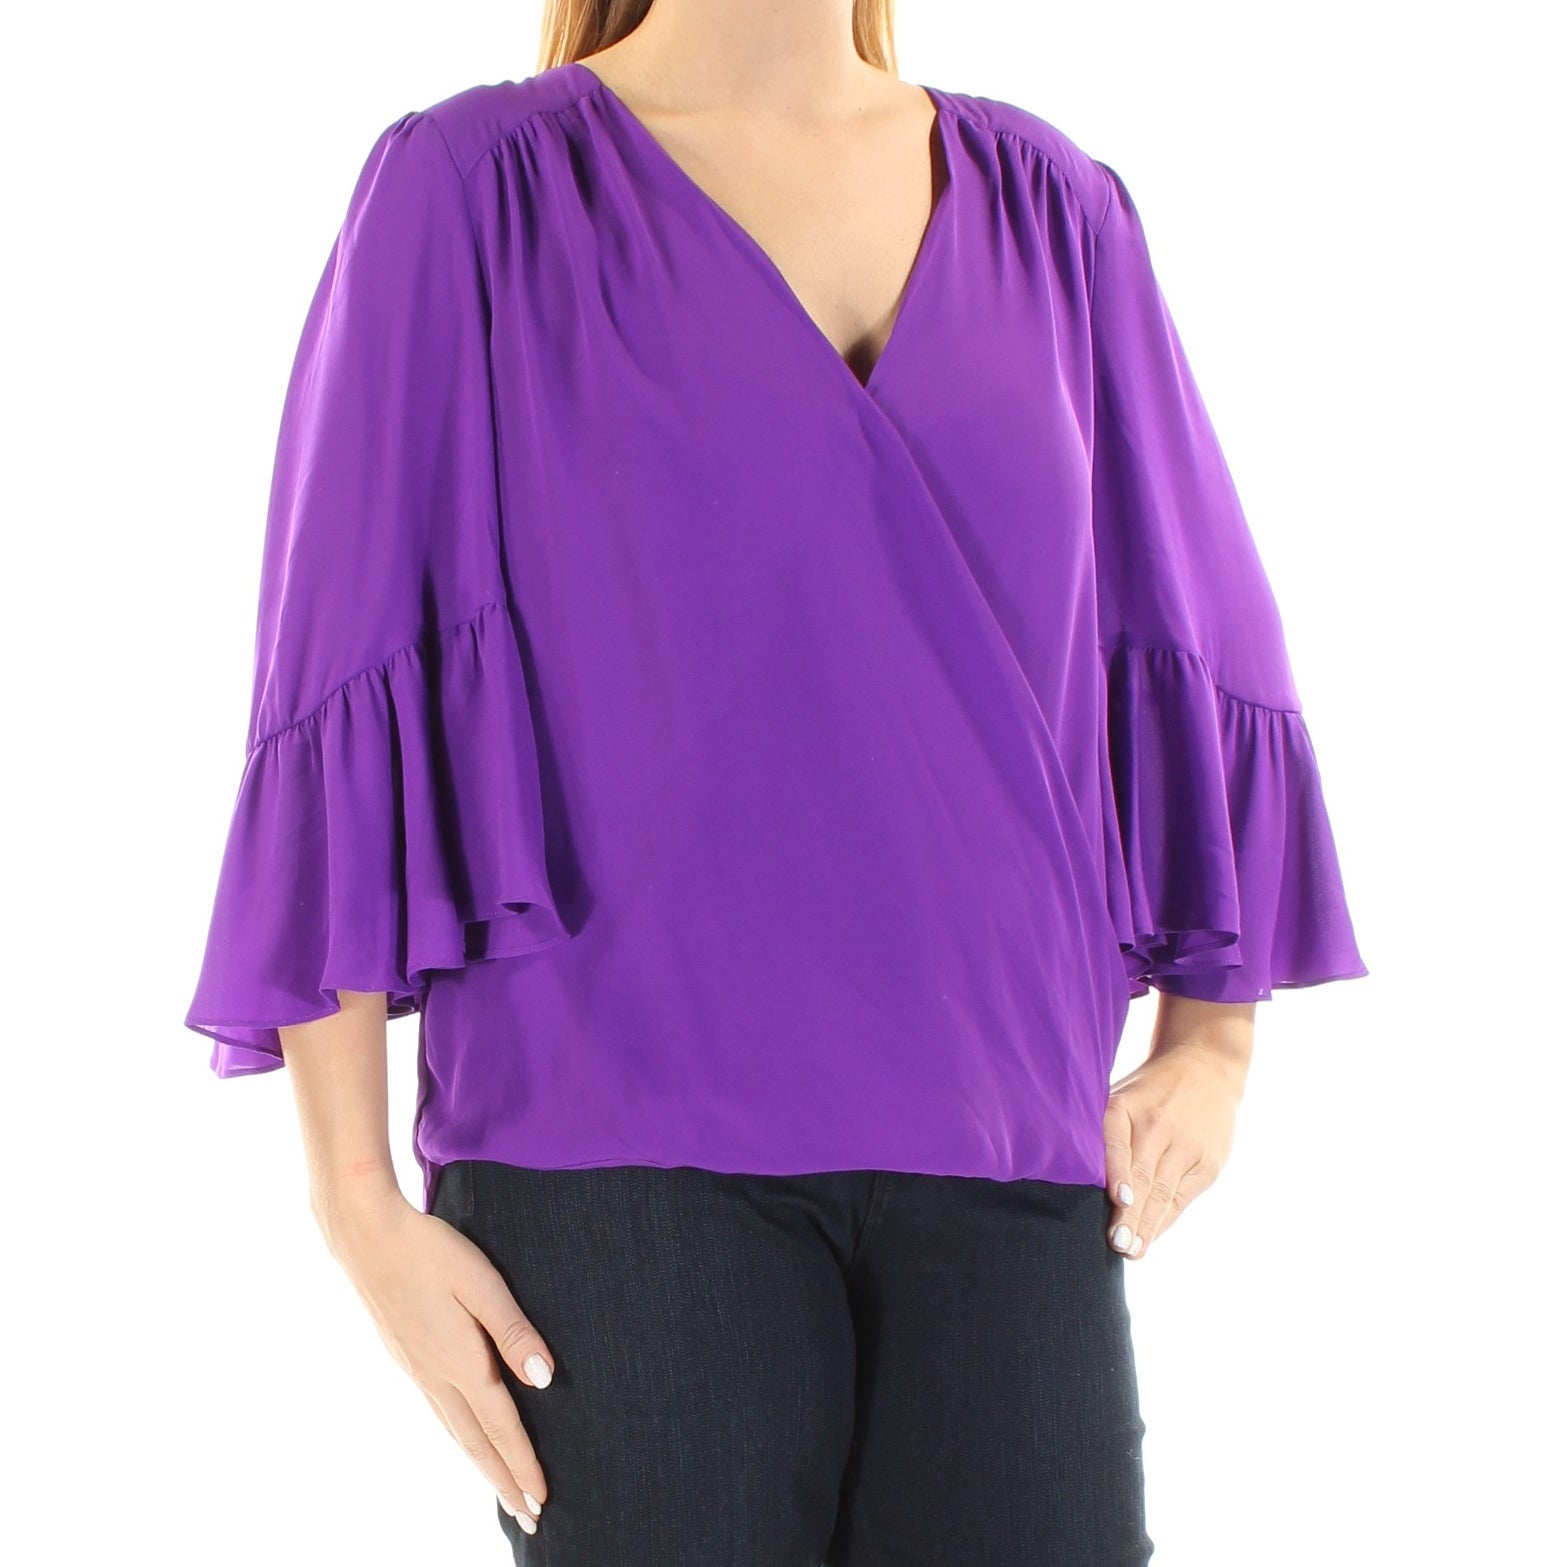 e46bef1b87ed Shop Womens Purple Bell Sleeve V Neck Casual Faux Wrap Top Size L - Free  Shipping On Orders Over $45 - Overstock - 22432757